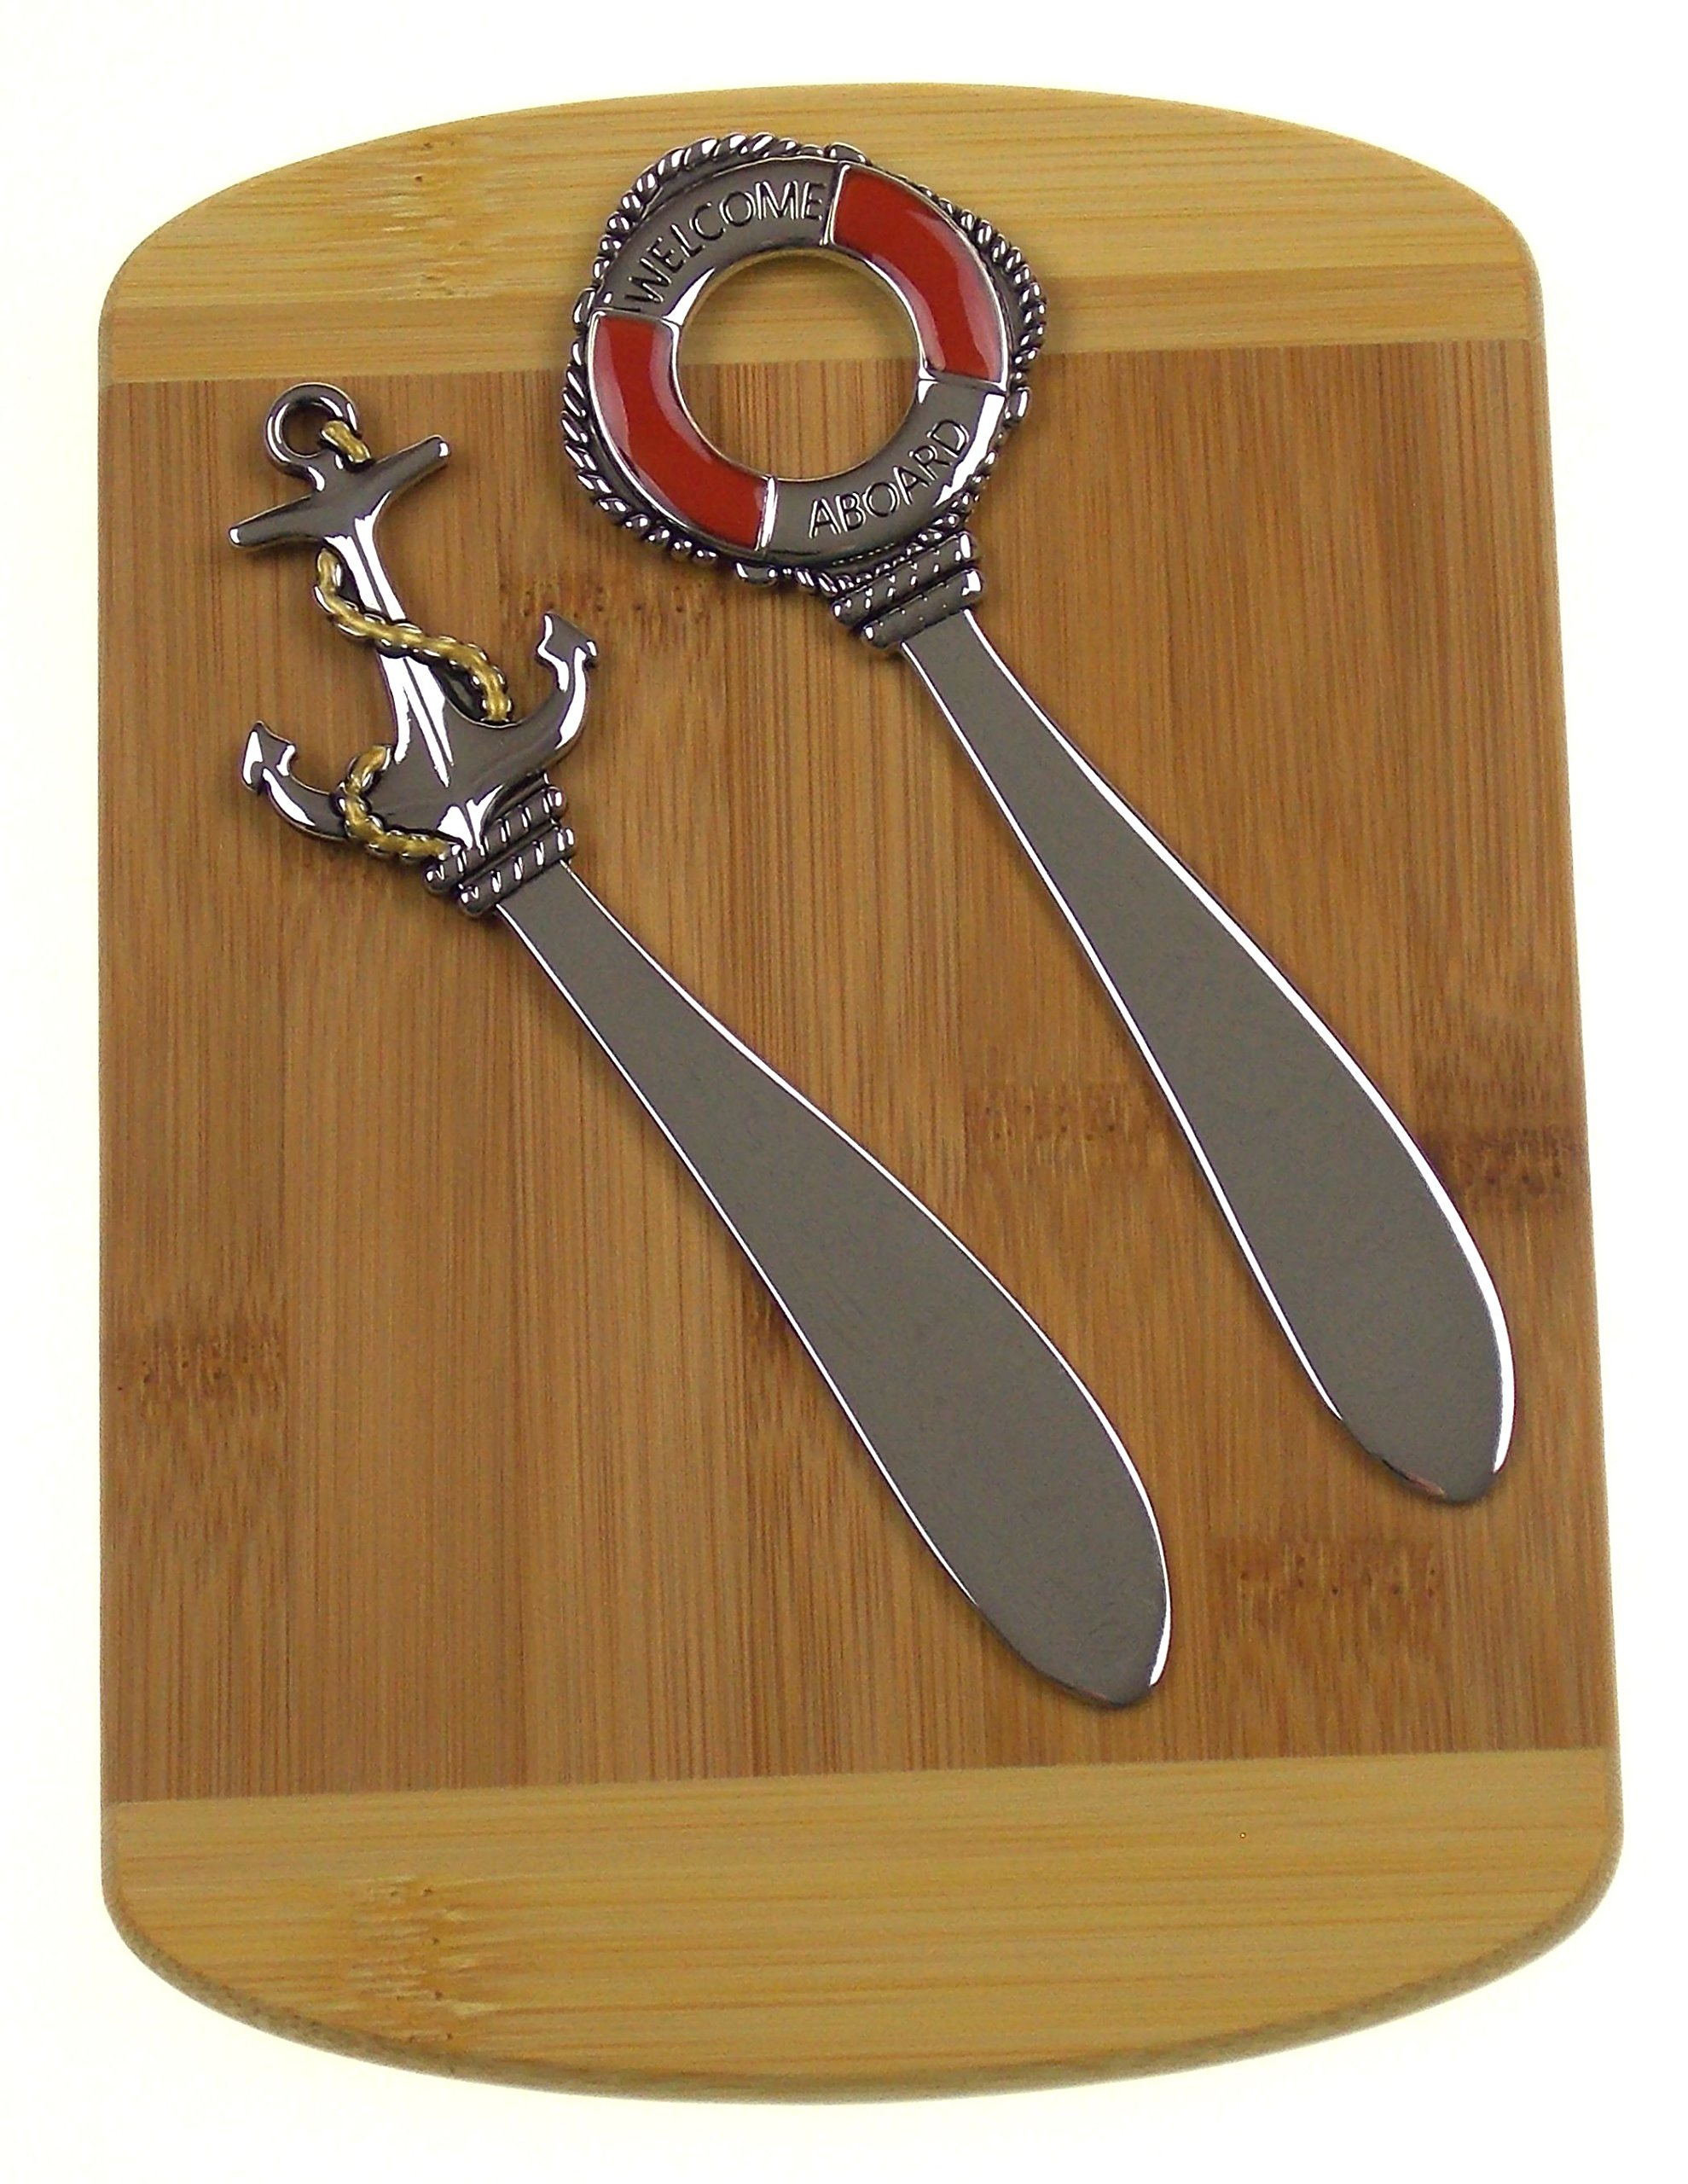 Nautical Cheese Spreaders Bundled with Bamboo Cheese Board by Hickoryville